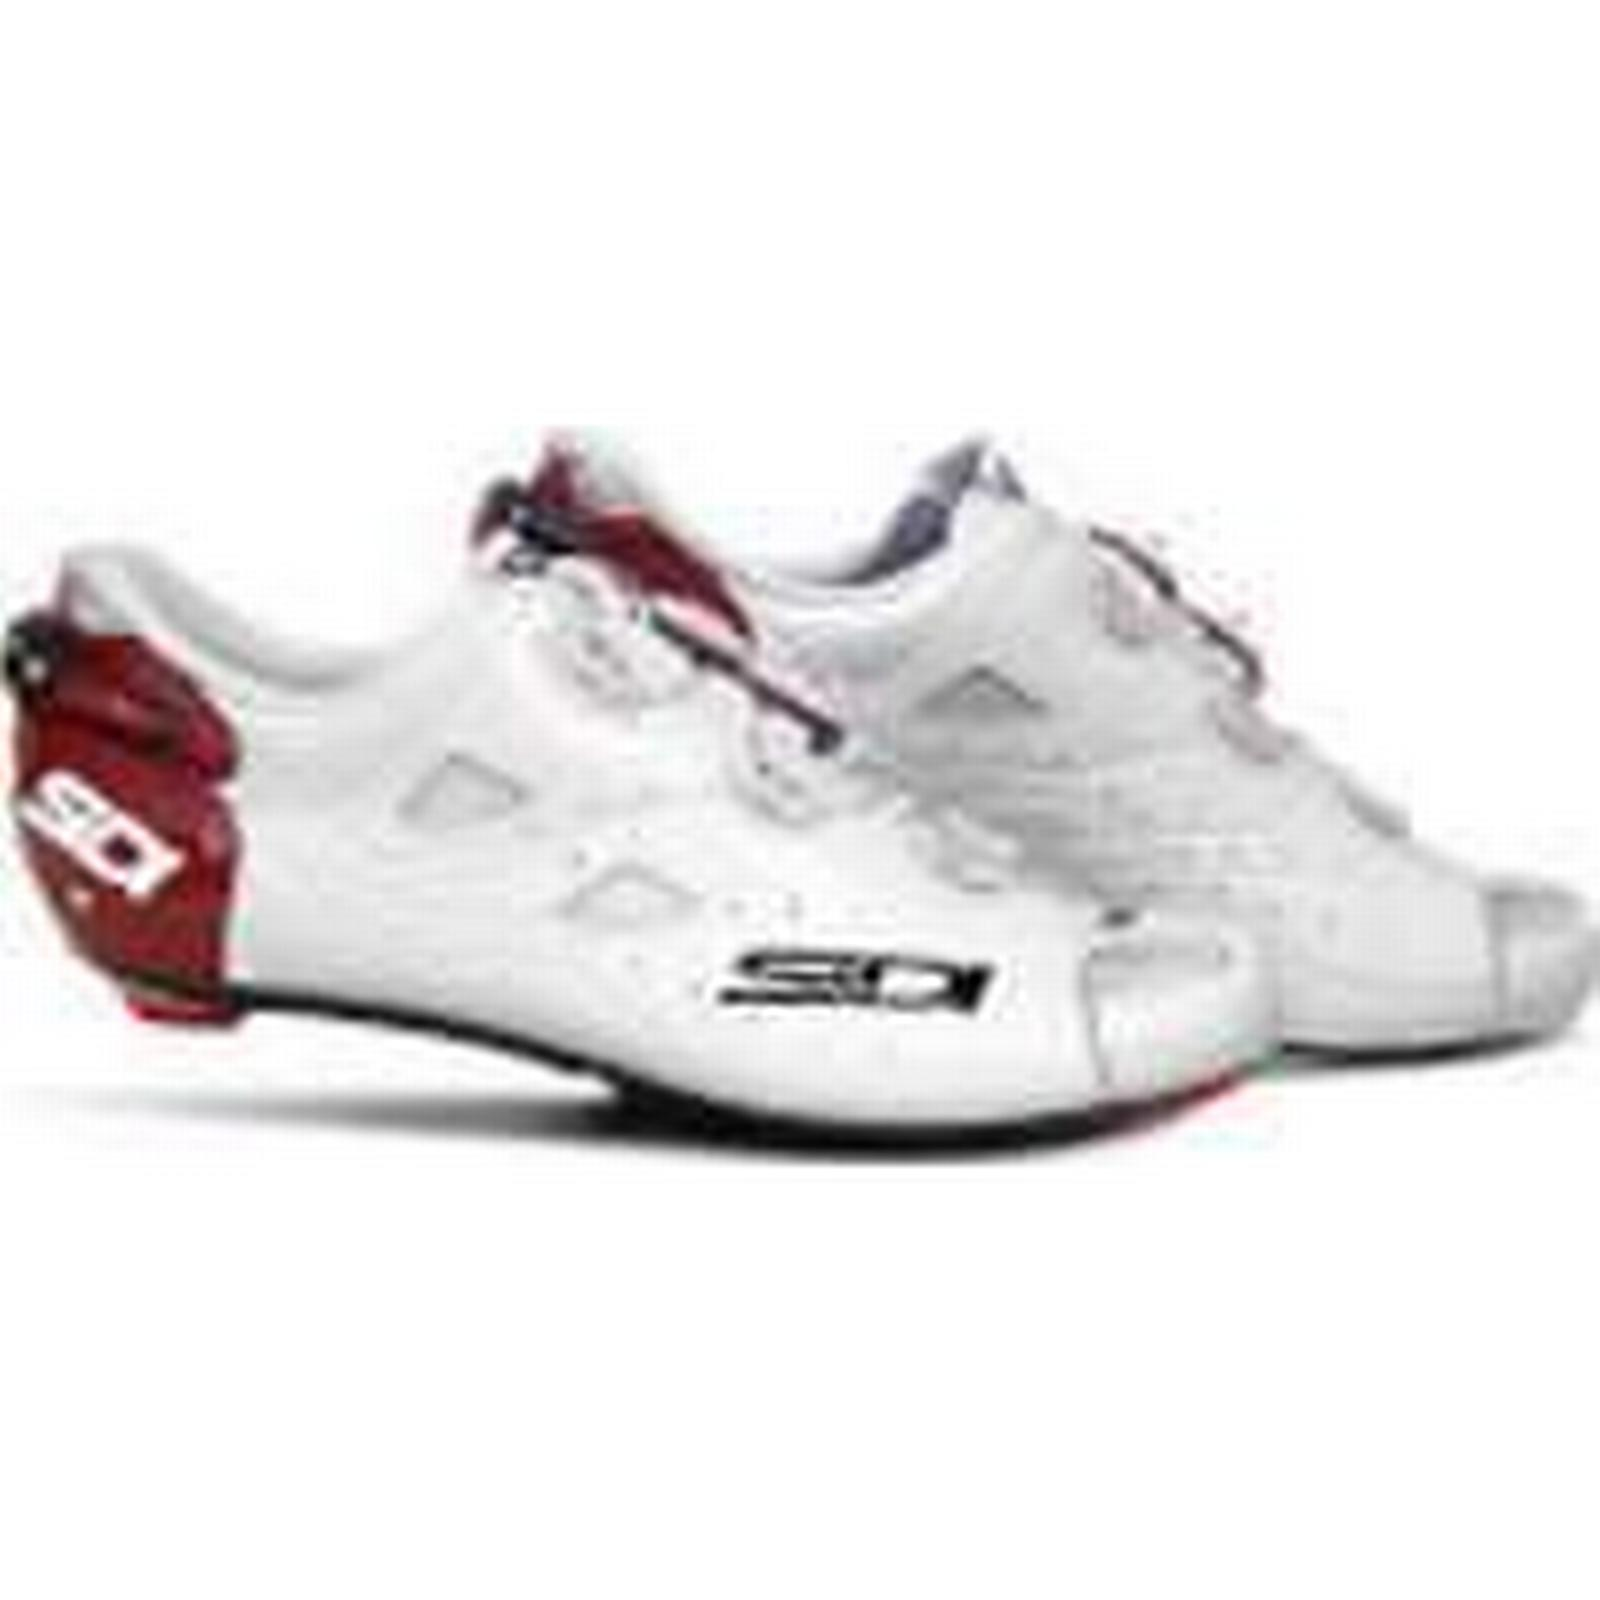 Sidi Shot Carbon Limited Edition Cycling White/Dark Shoes - Katusha - White/Dark Cycling Red - EU 44.5 - White/Red 0c9284